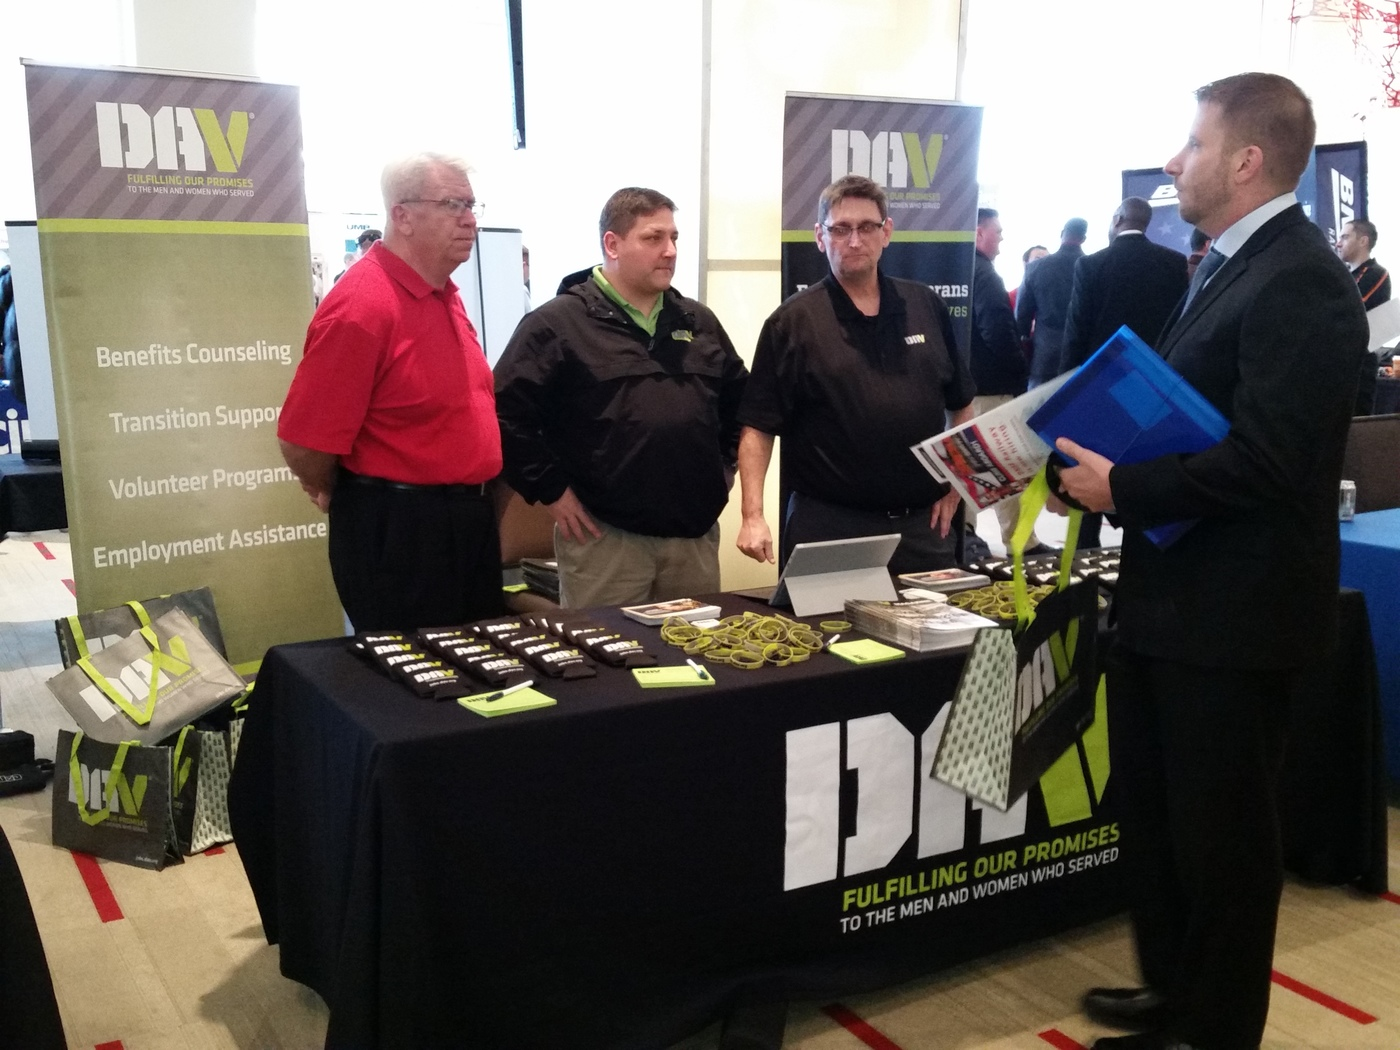 DAV-job-fair